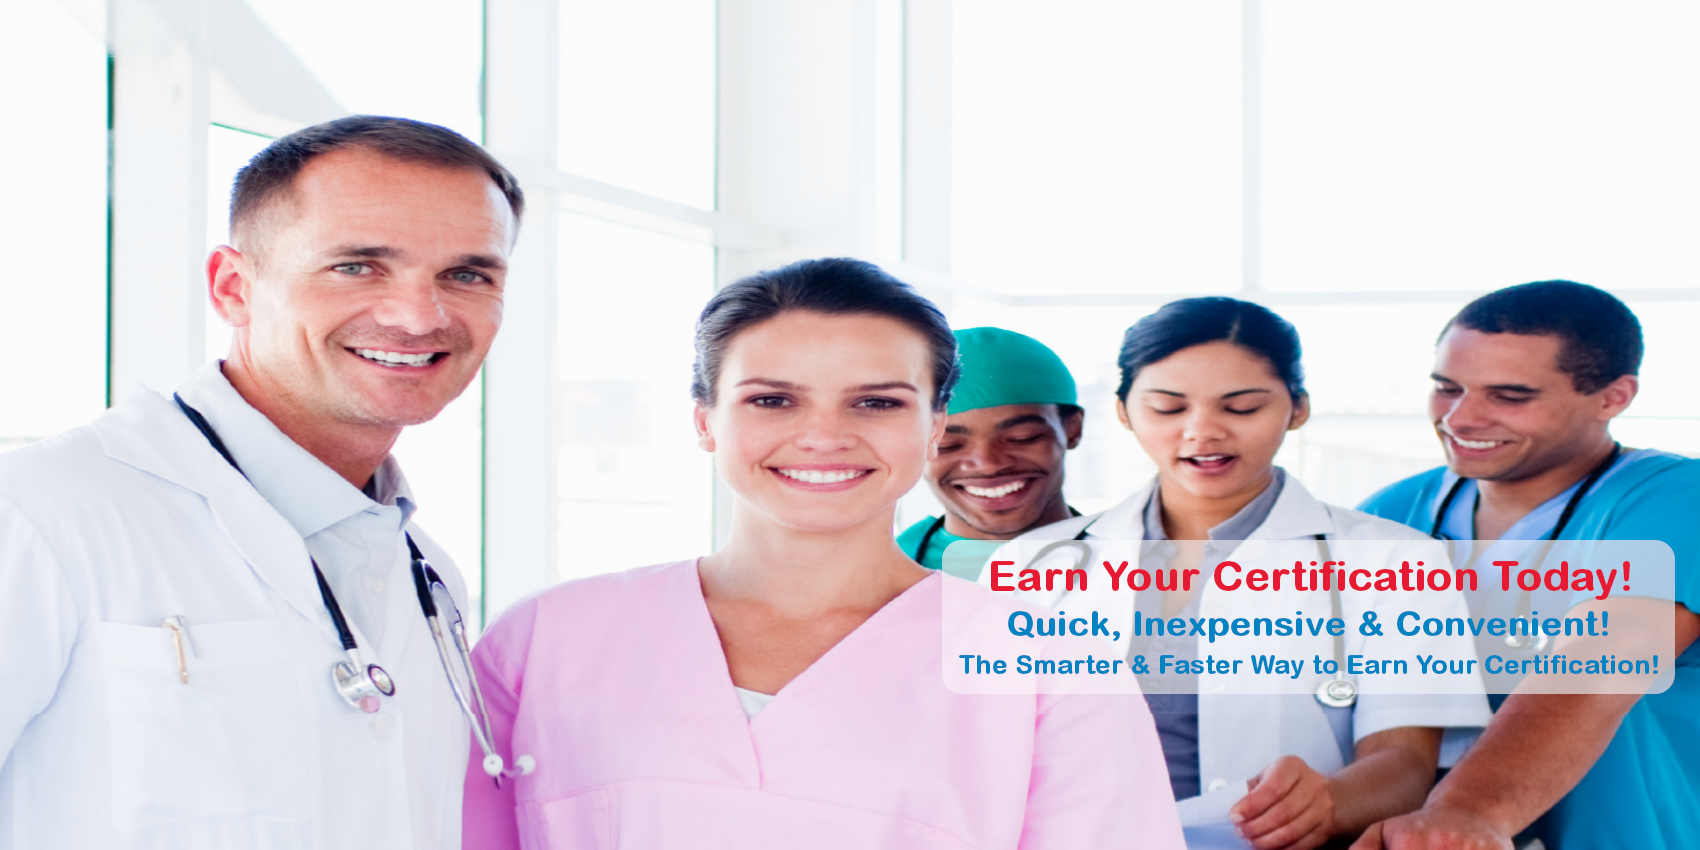 online First Aid certification, Online First Aid, First Aid Certification, Certification, Online, First Aid